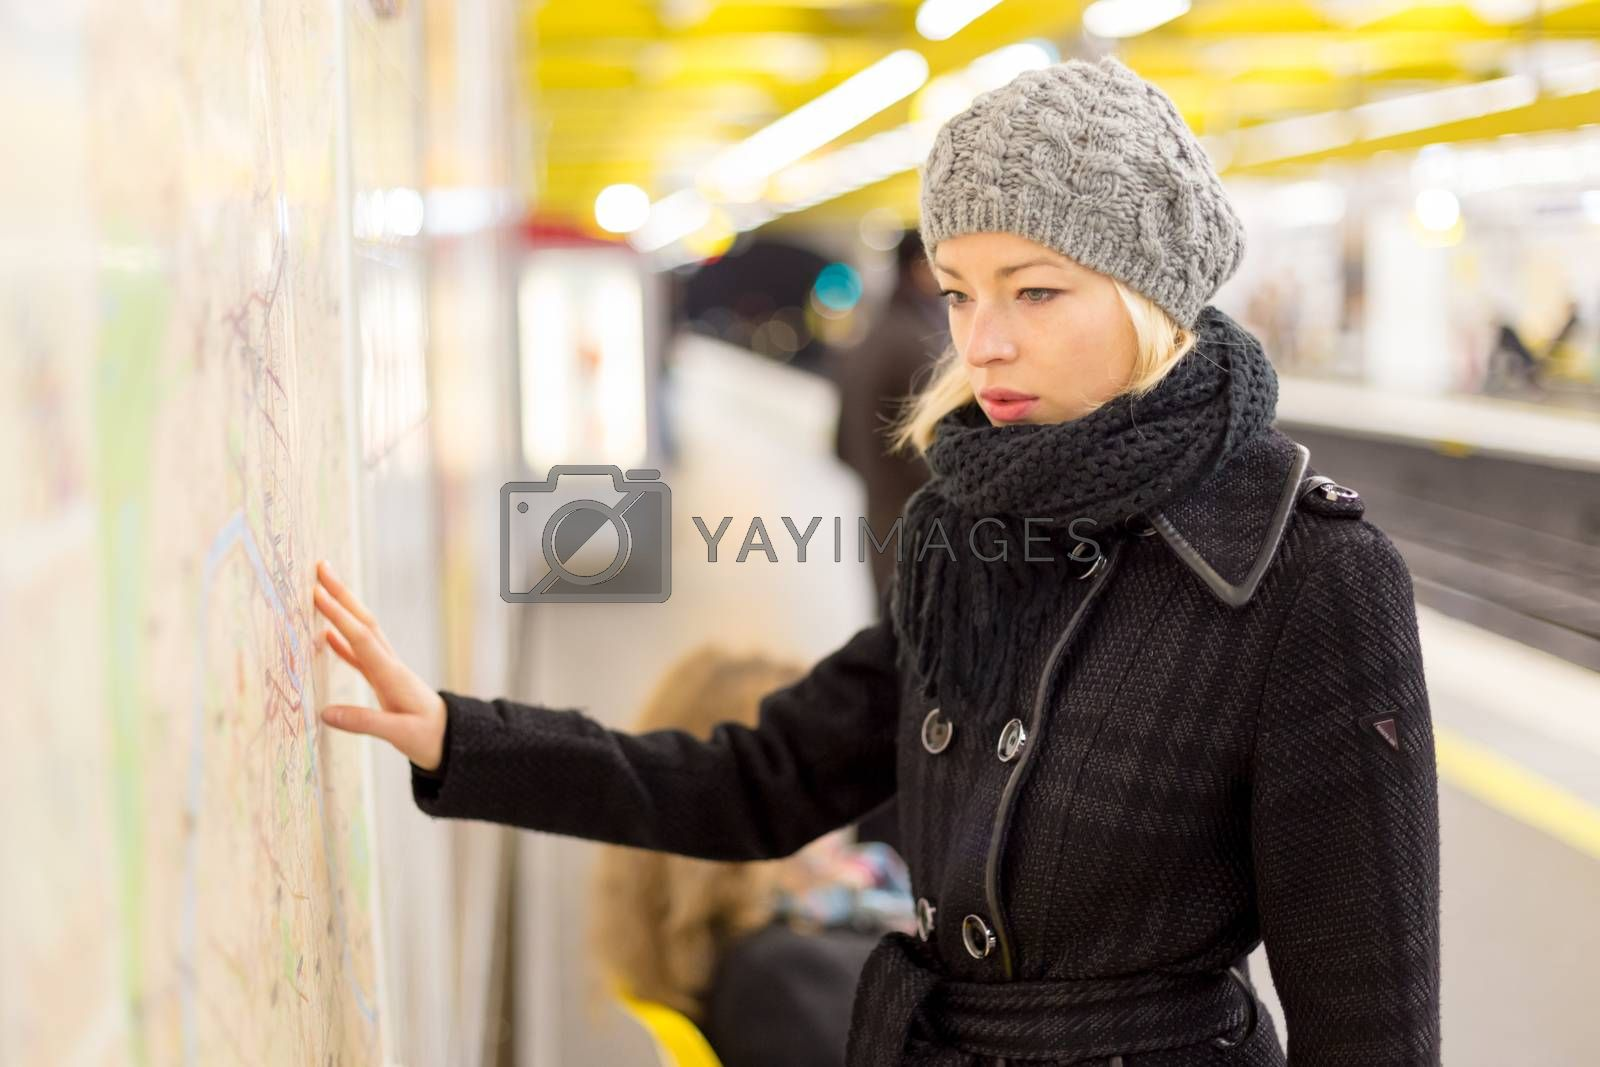 Casually dressed woman wearing winter coat, orientating herself with public transport map panel. Urban transport.